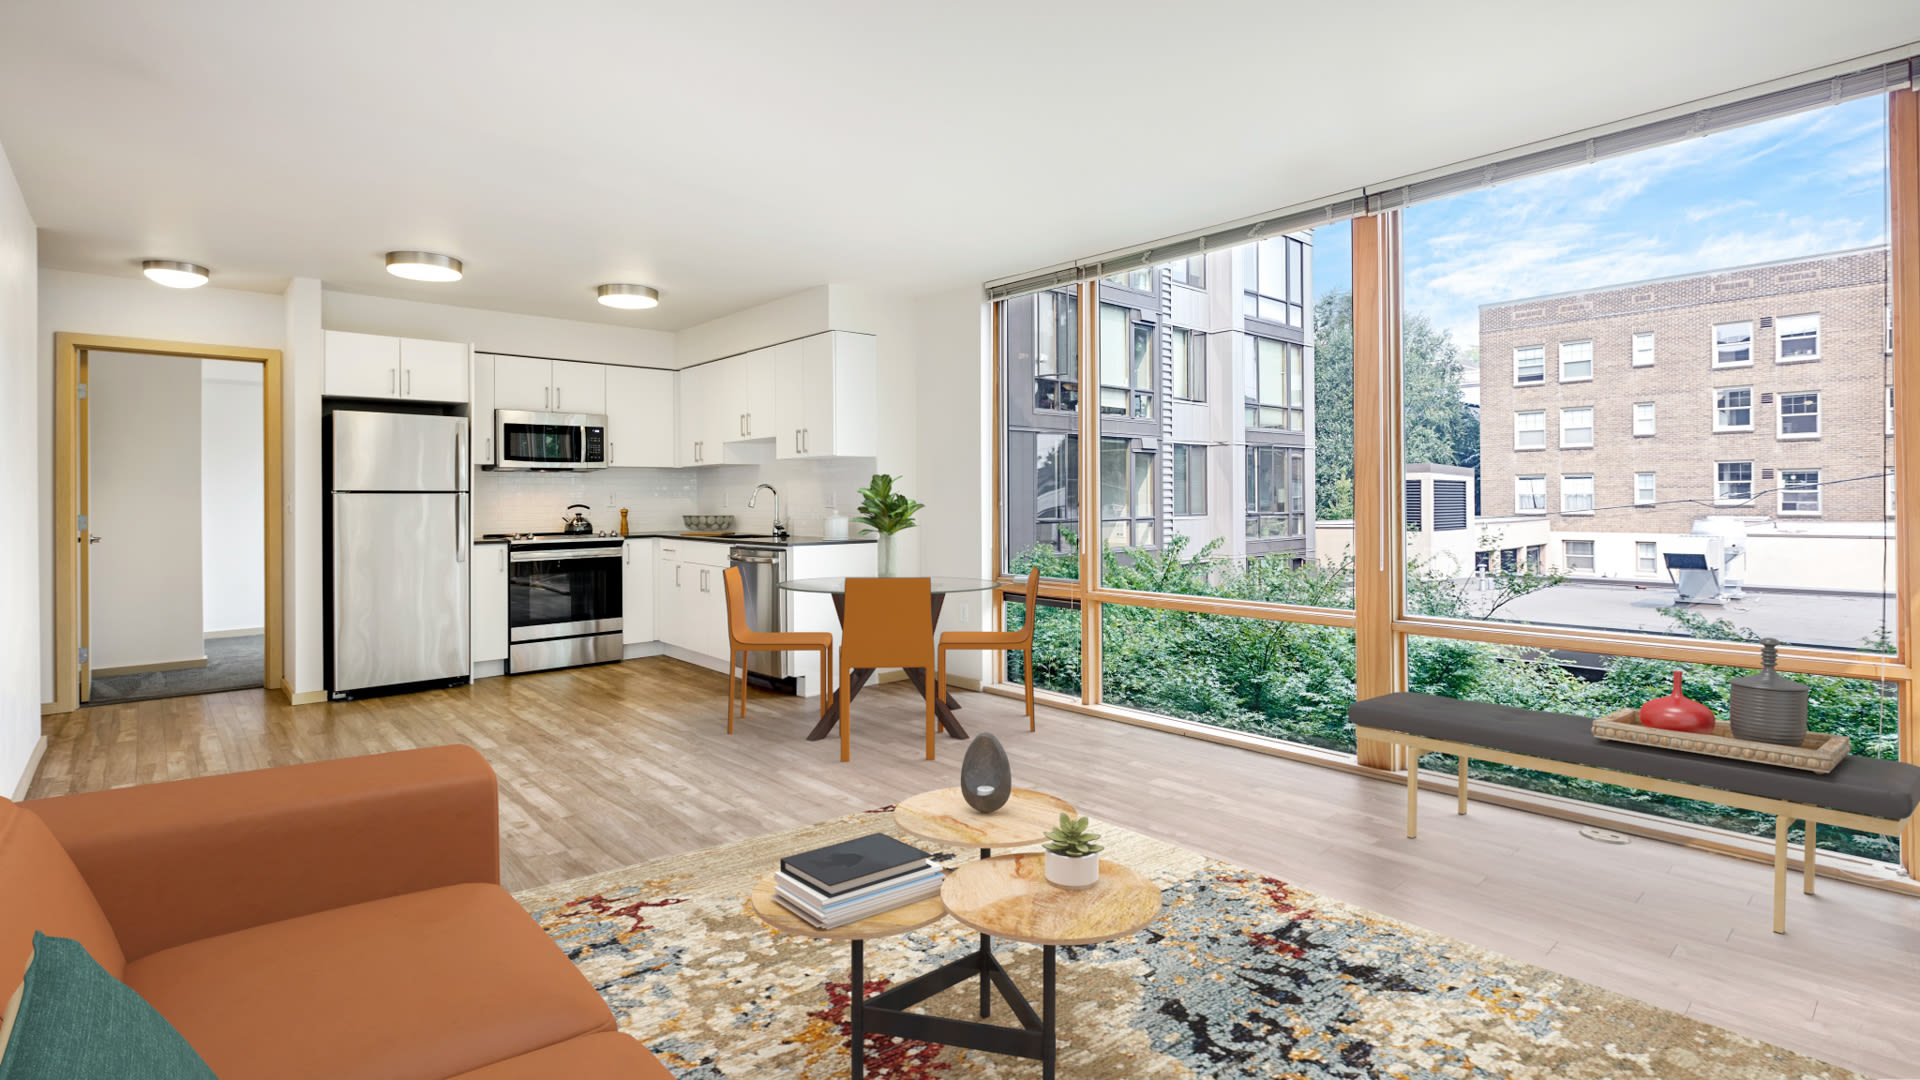 Chloe on Union Apartments - Kitchen and Living Room with Floor-to-Ceiling Windows